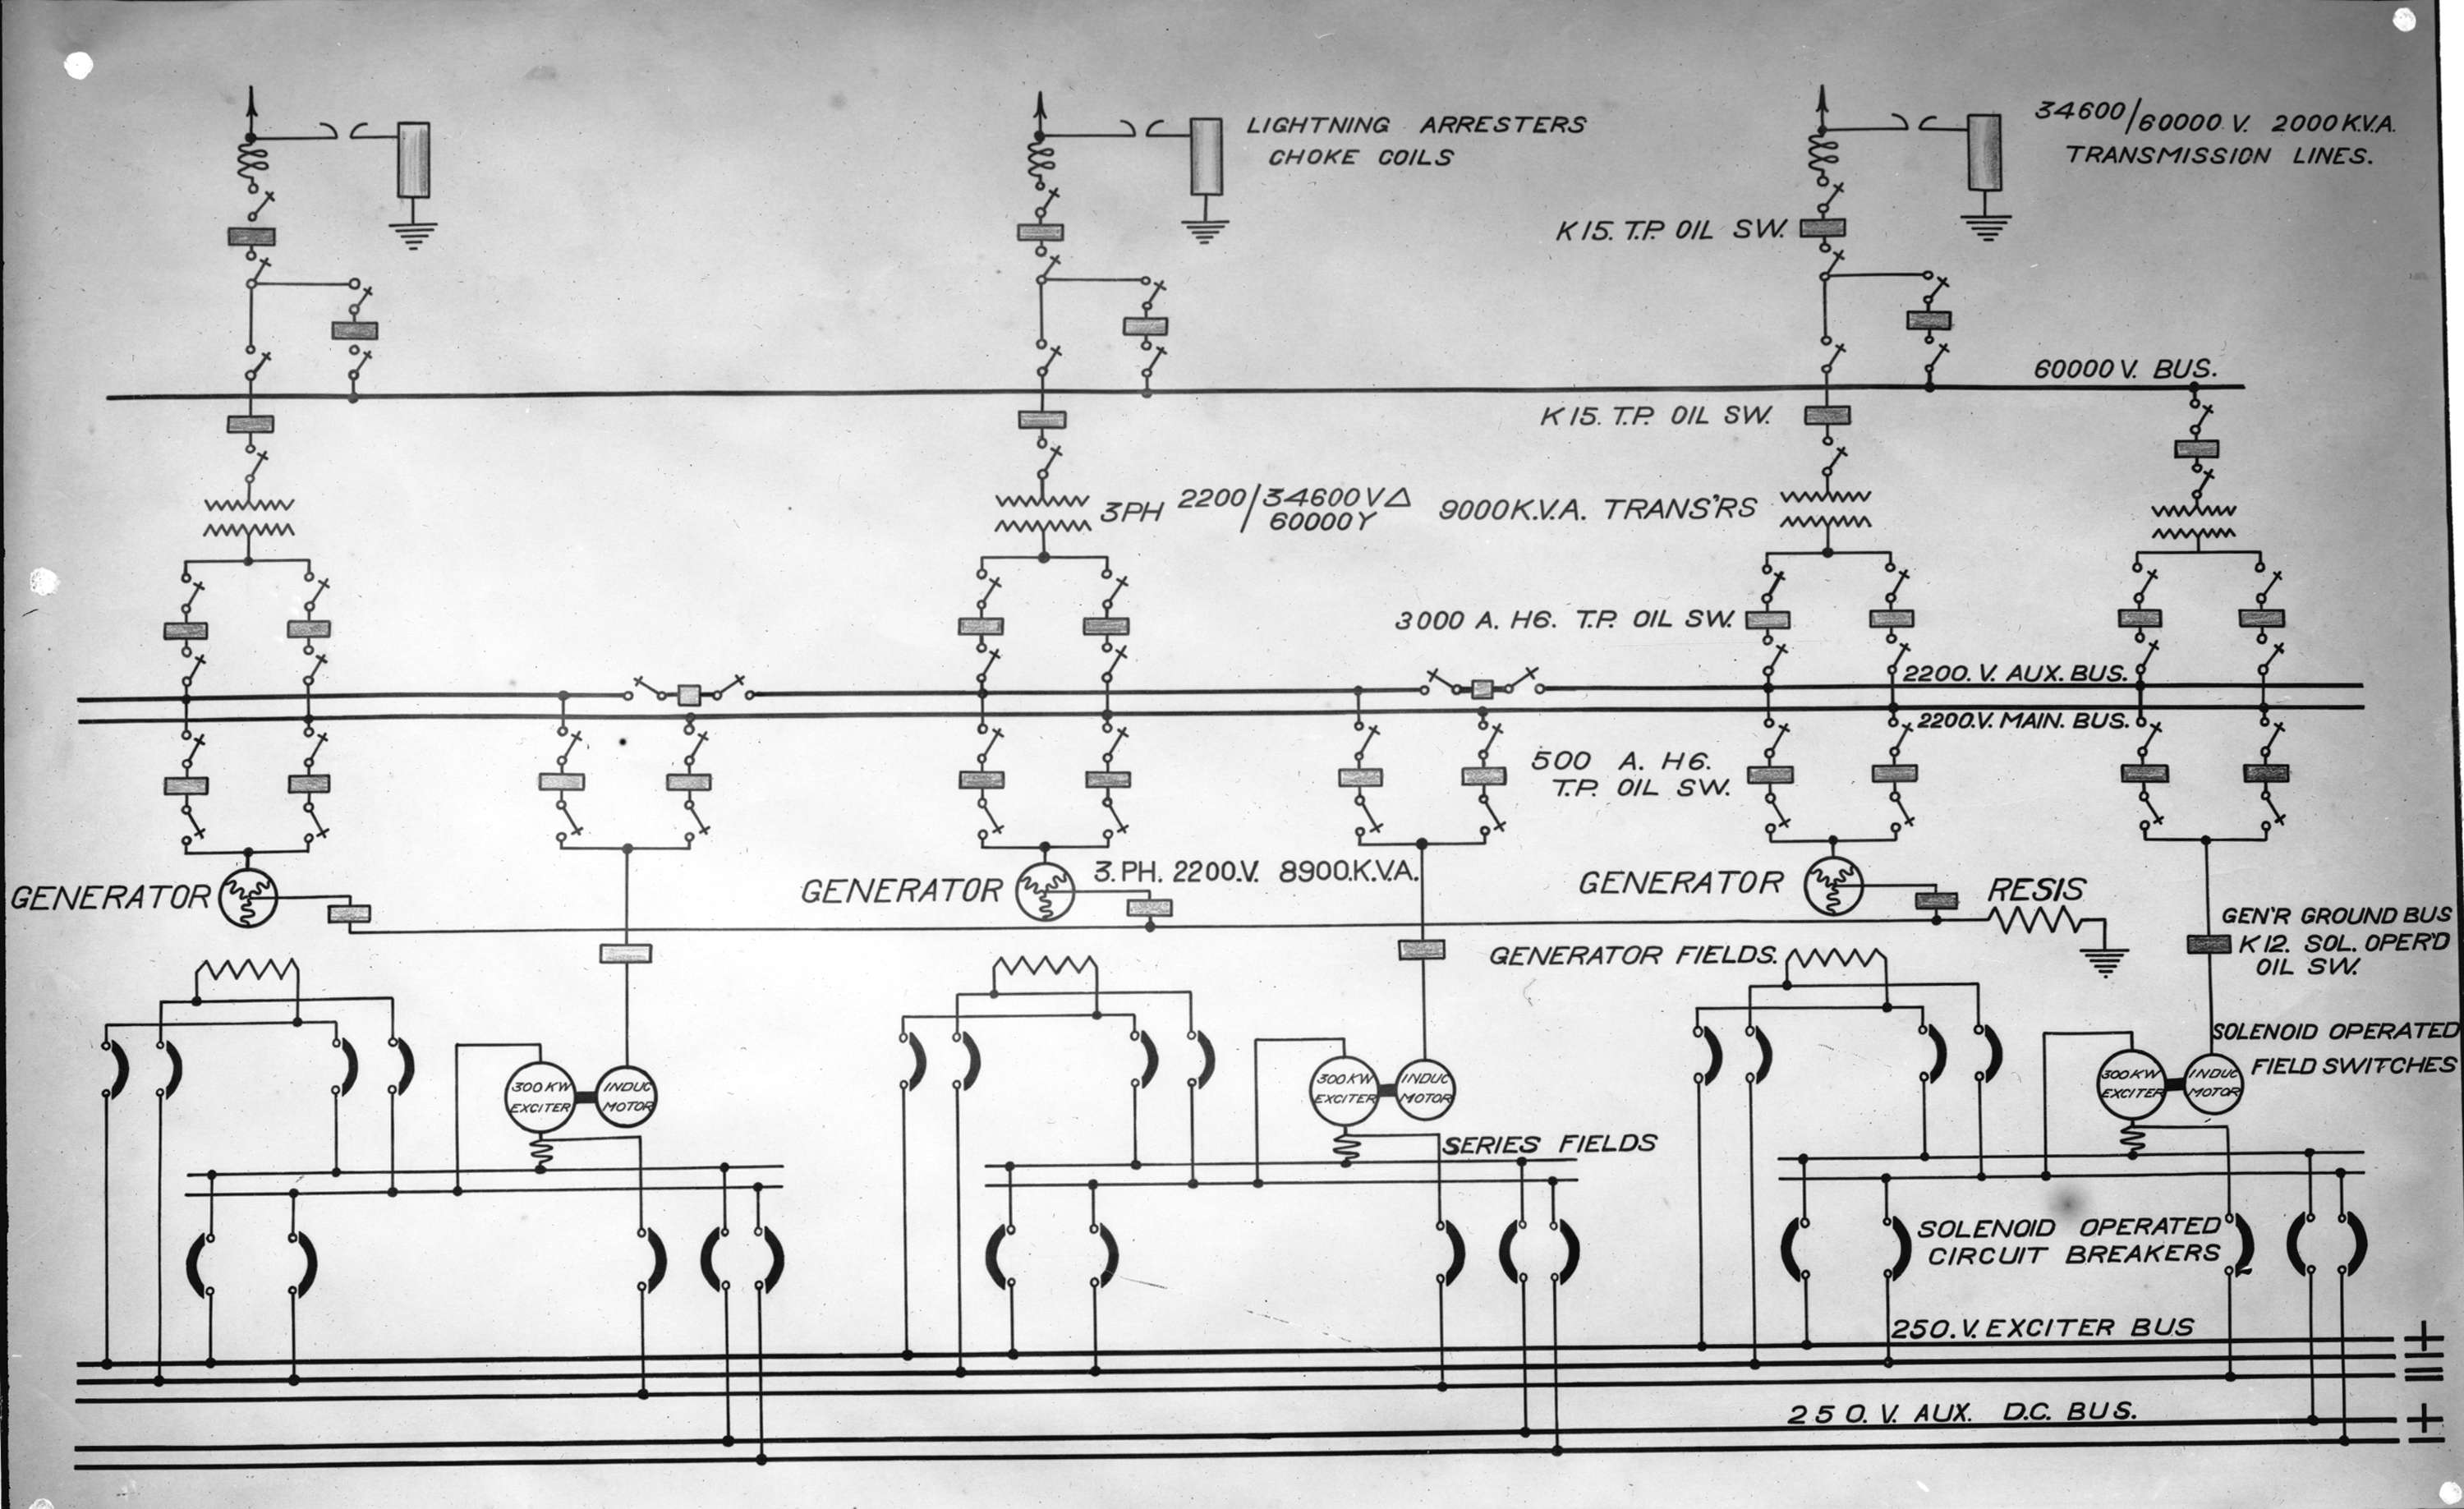 power plant electrical diagram data wiring diagram today Ford Diagrams Schematics power plant electrical diagram wiring diagram data solar power plant electrical diagram power plant electrical diagram